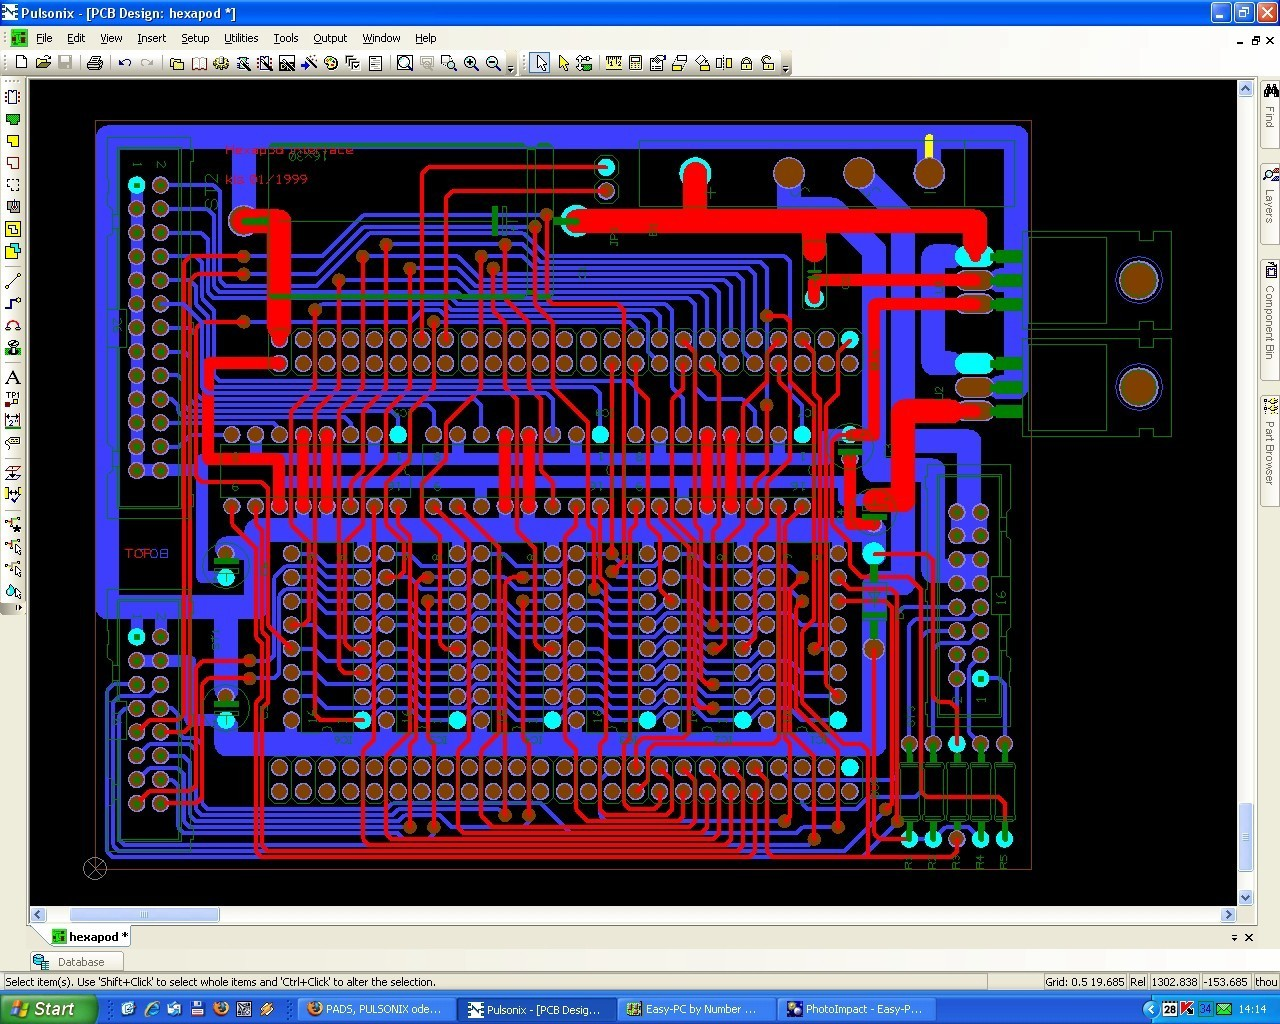 Pcb Schematic Capture - Free Pcb Schematic Capture Download on free venn diagram, free design, logic synthesis, free electronics, free schedule, free assembly, free sectional, free logic, free pictogram, free cad, free drawing, electronic design automation, digital electronics, schematic editor,